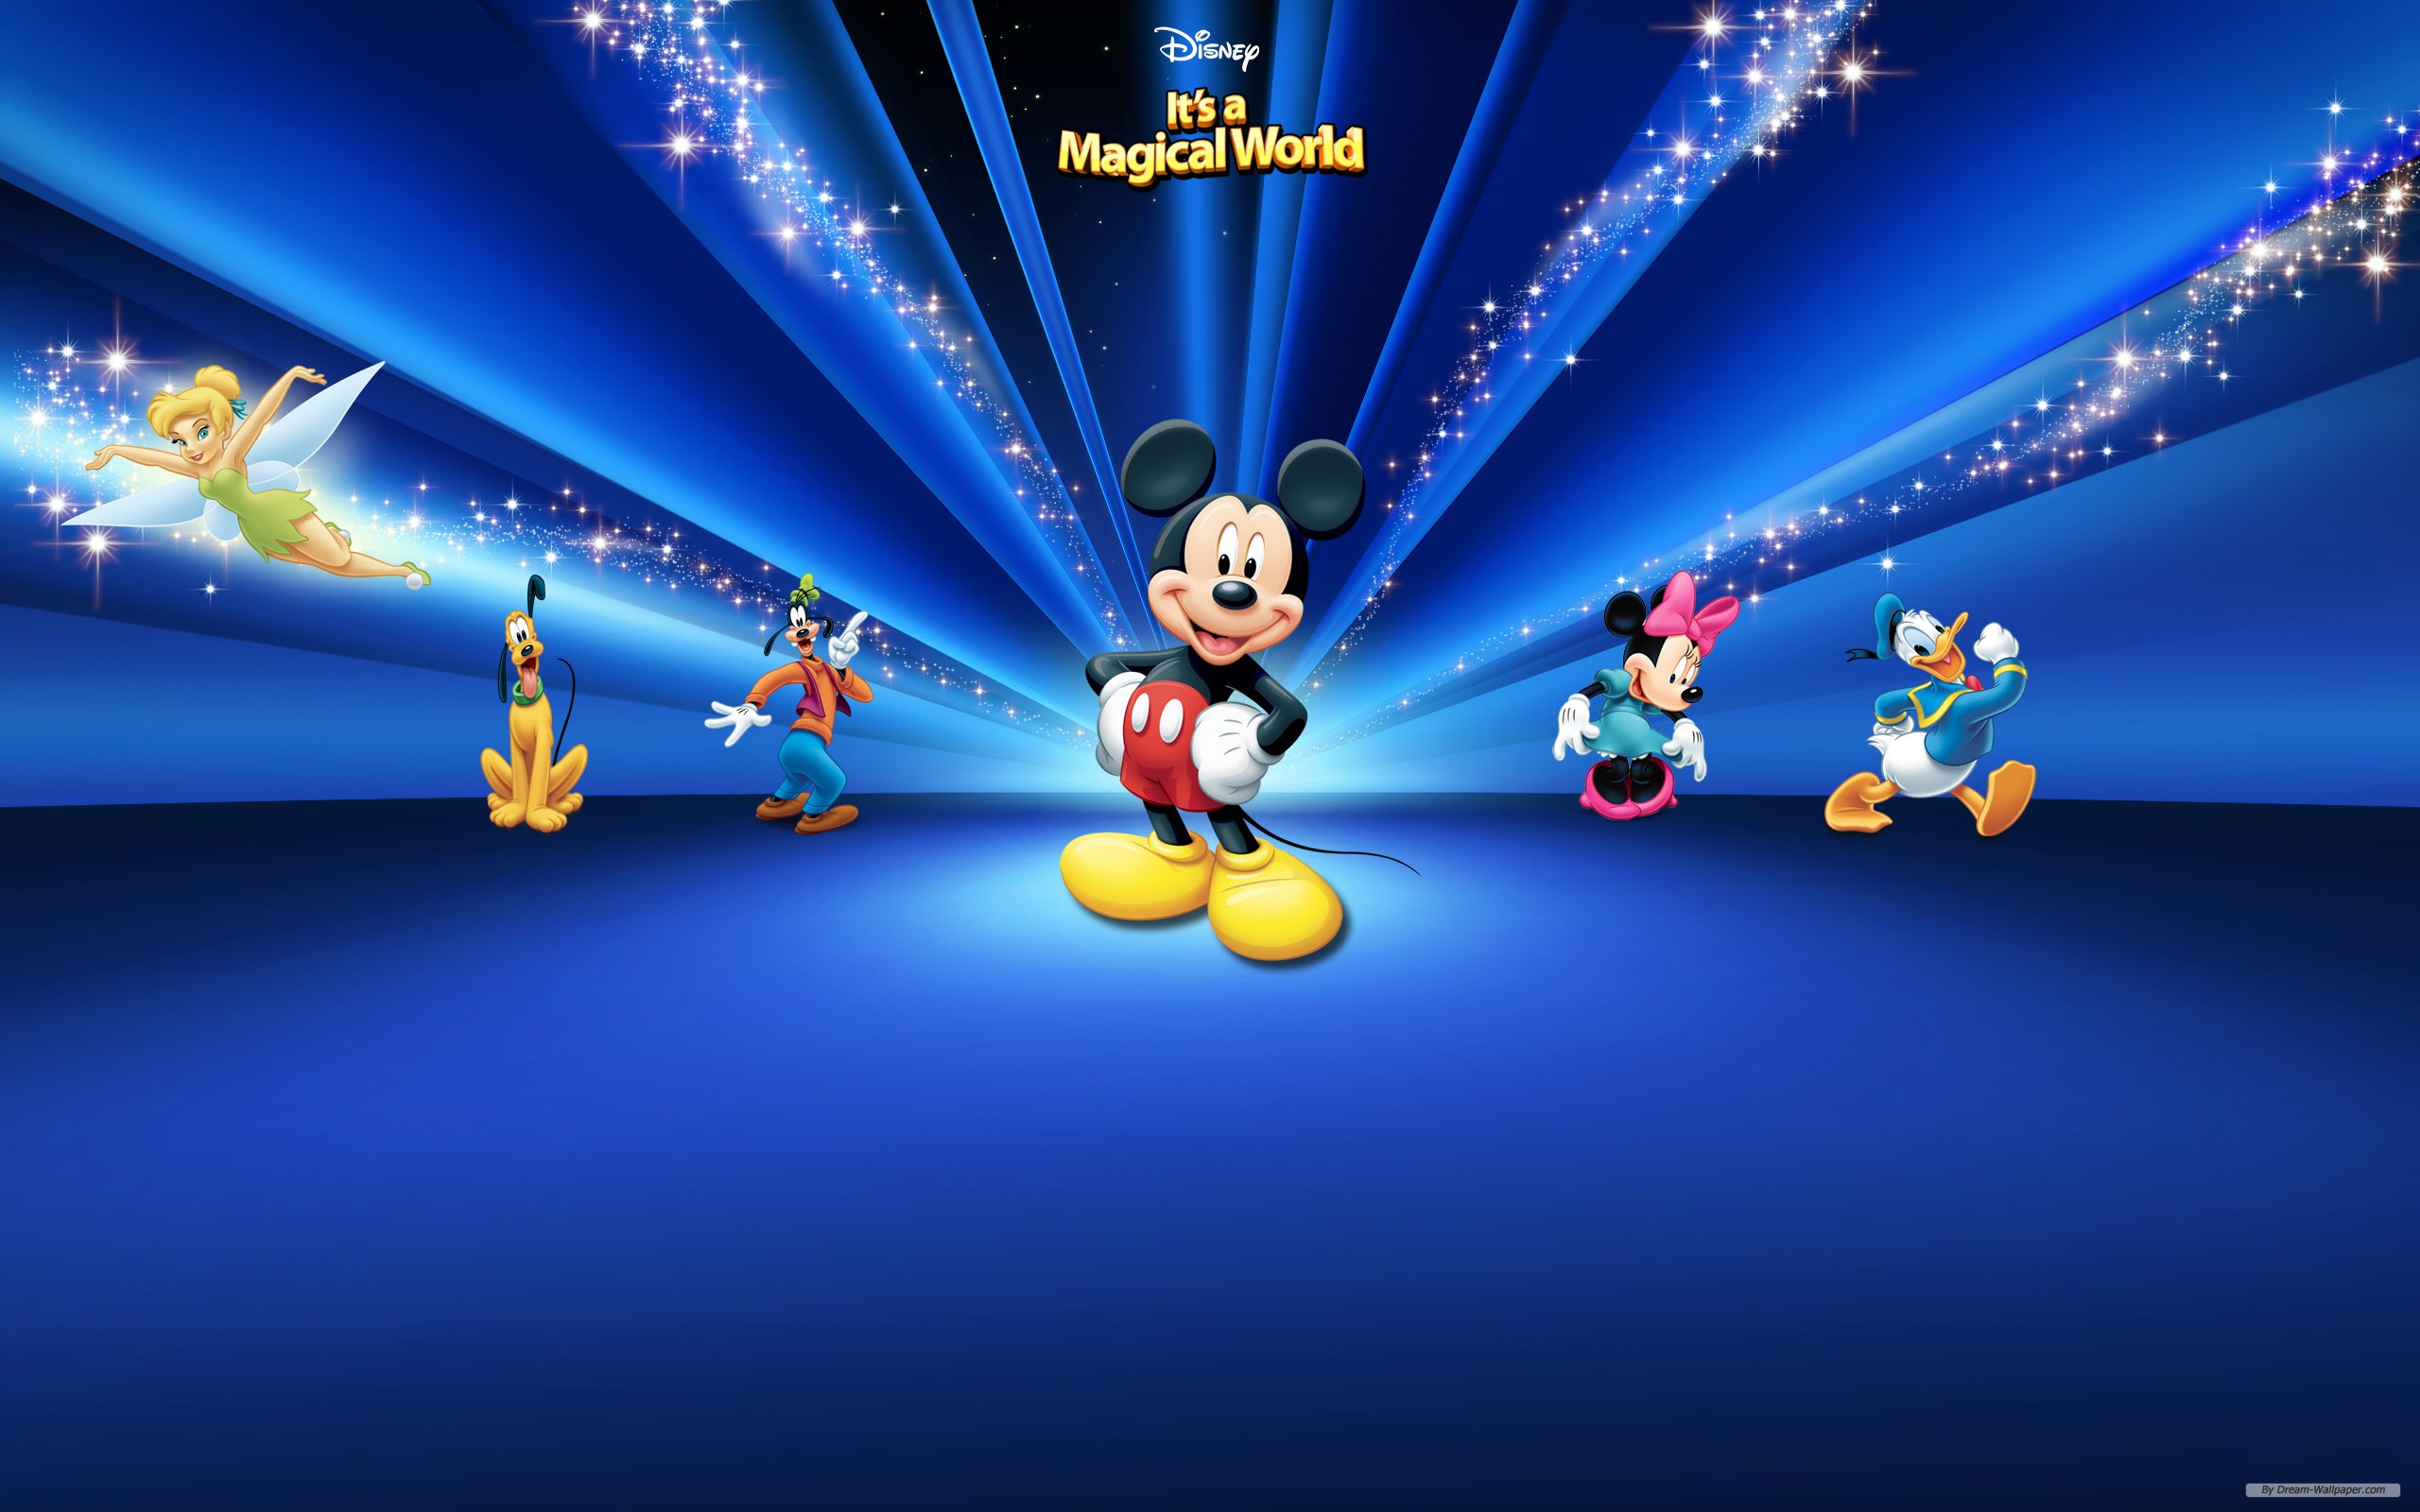 wallpaper   Disney Theme 1 wallpaper   2560x1600 wallpaper   Index 9 2560x1600